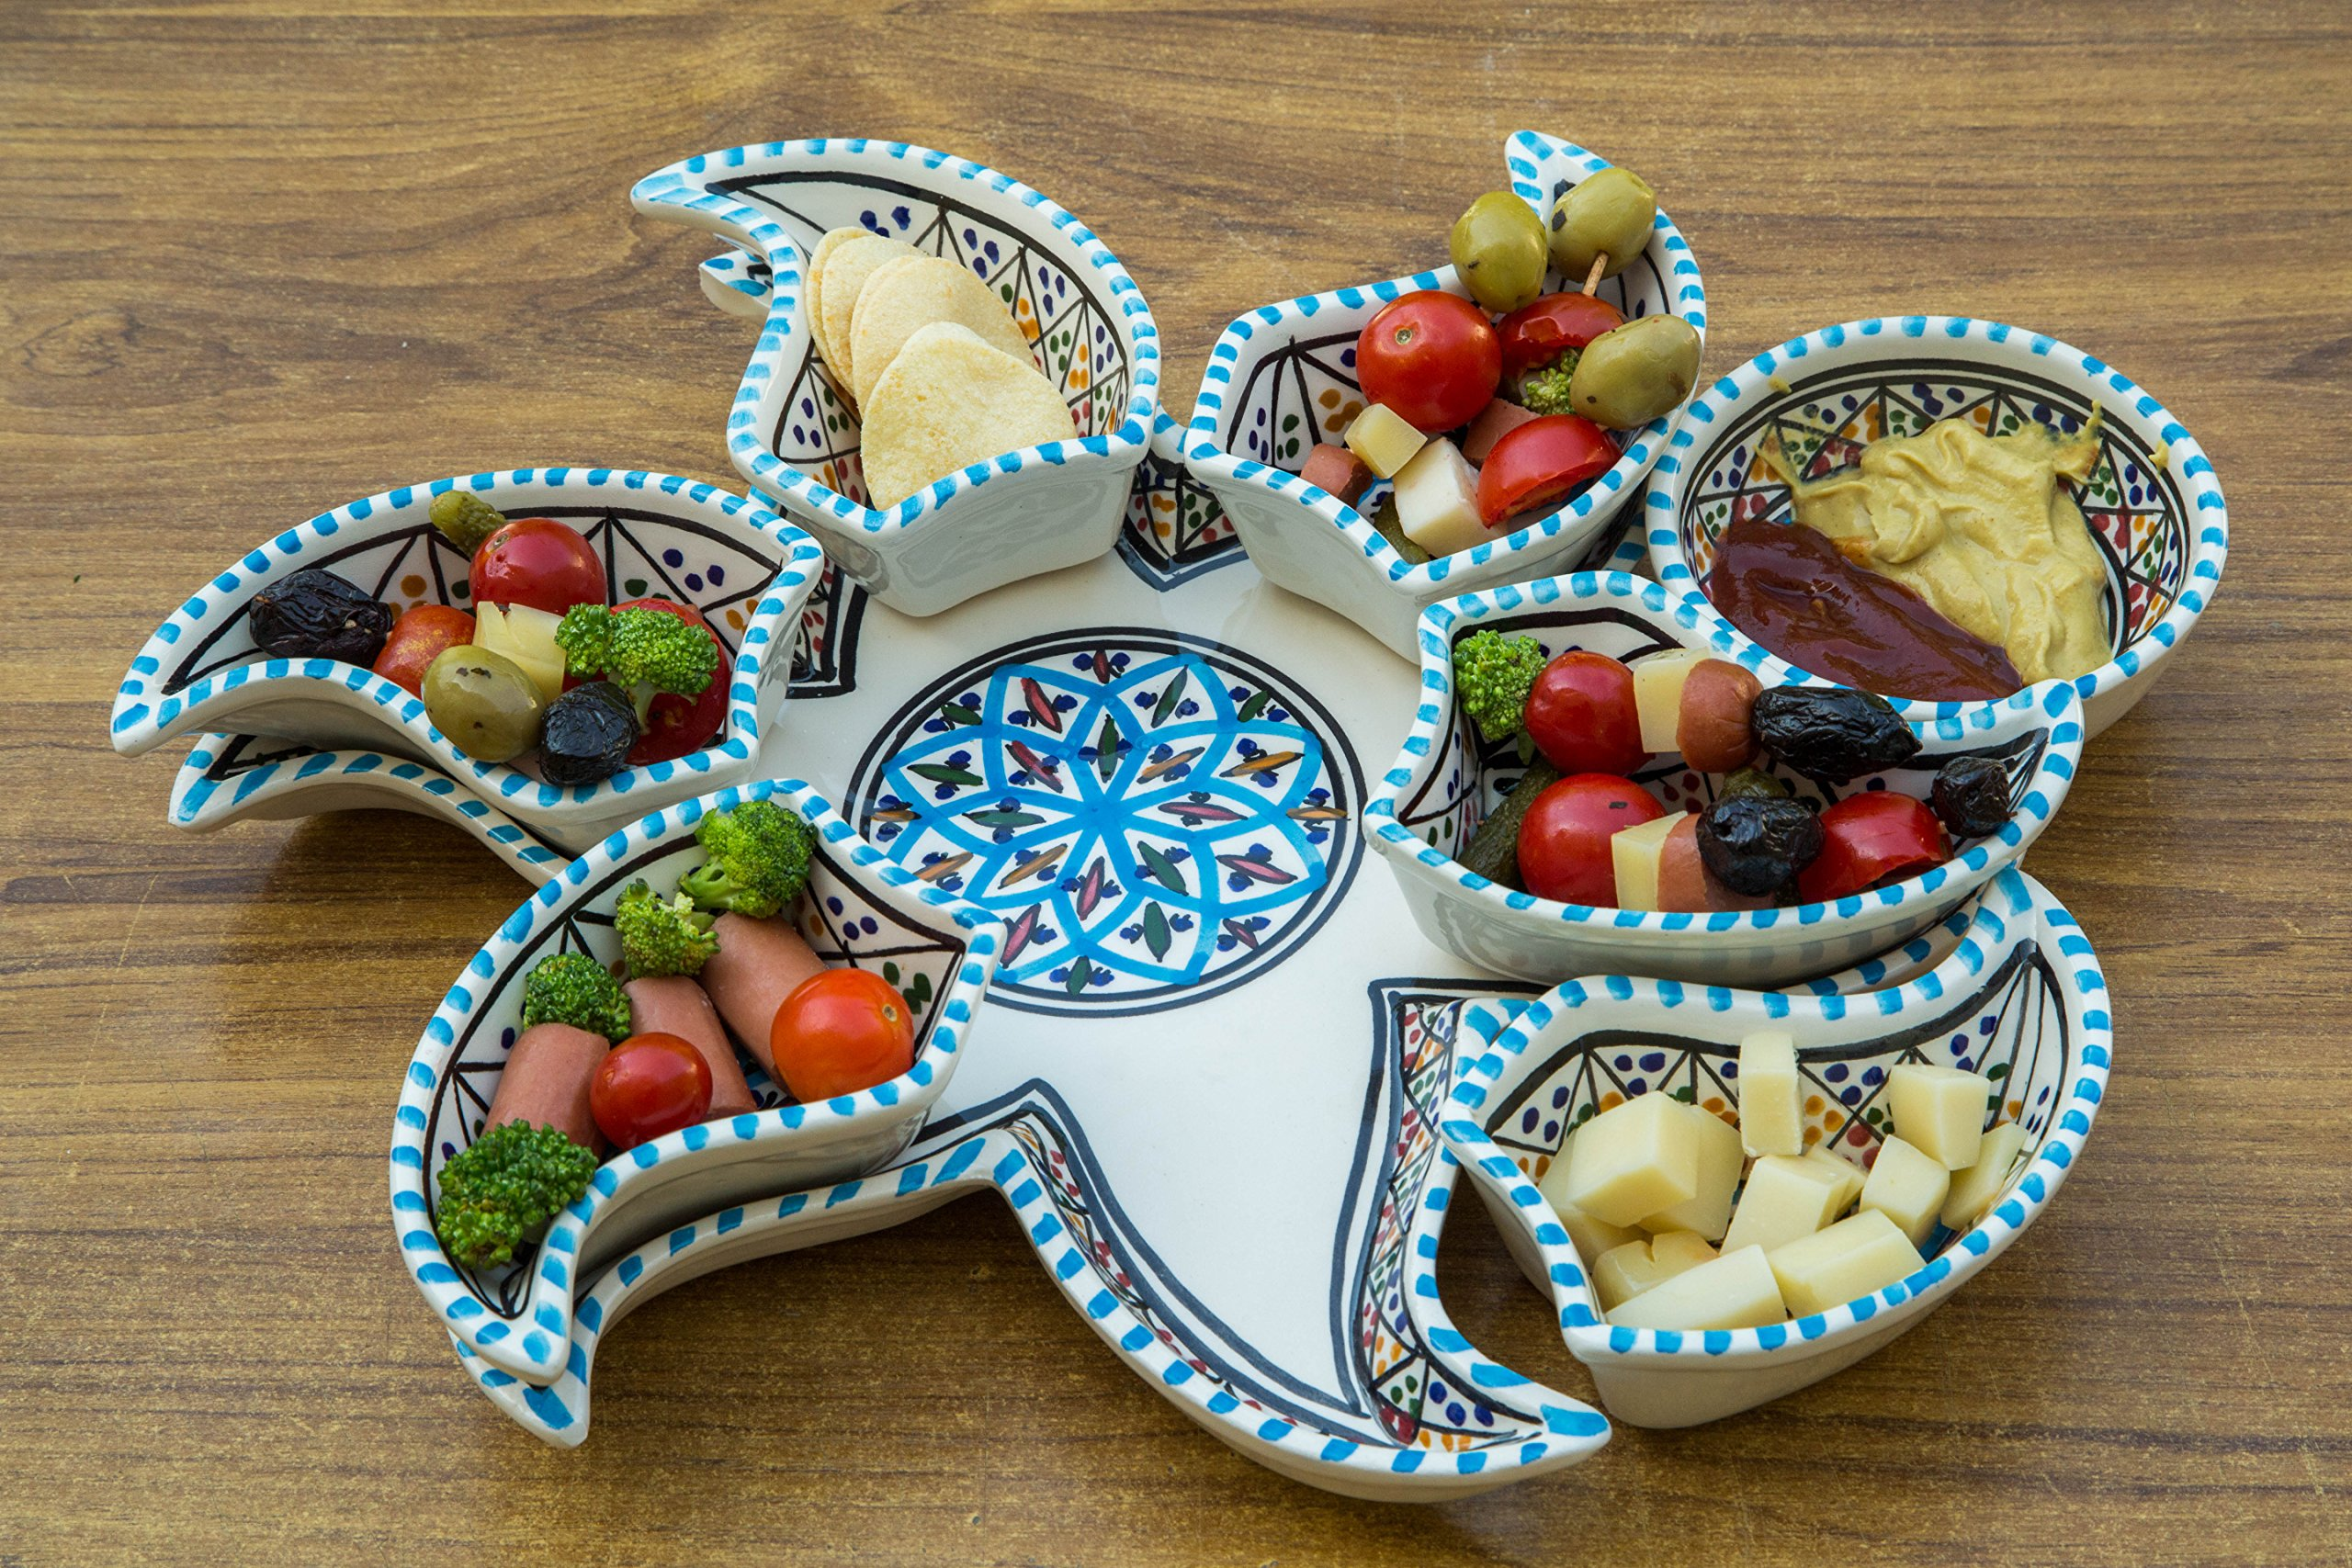 Turquoise Star Dippers, 8 Pieces of Ceramic Dipping and Serving Plates Handmade, Hand-painted - Gifts, Wedding Gifts Birthday Celebration and Housewarming Gifts, Labor Day Celebration